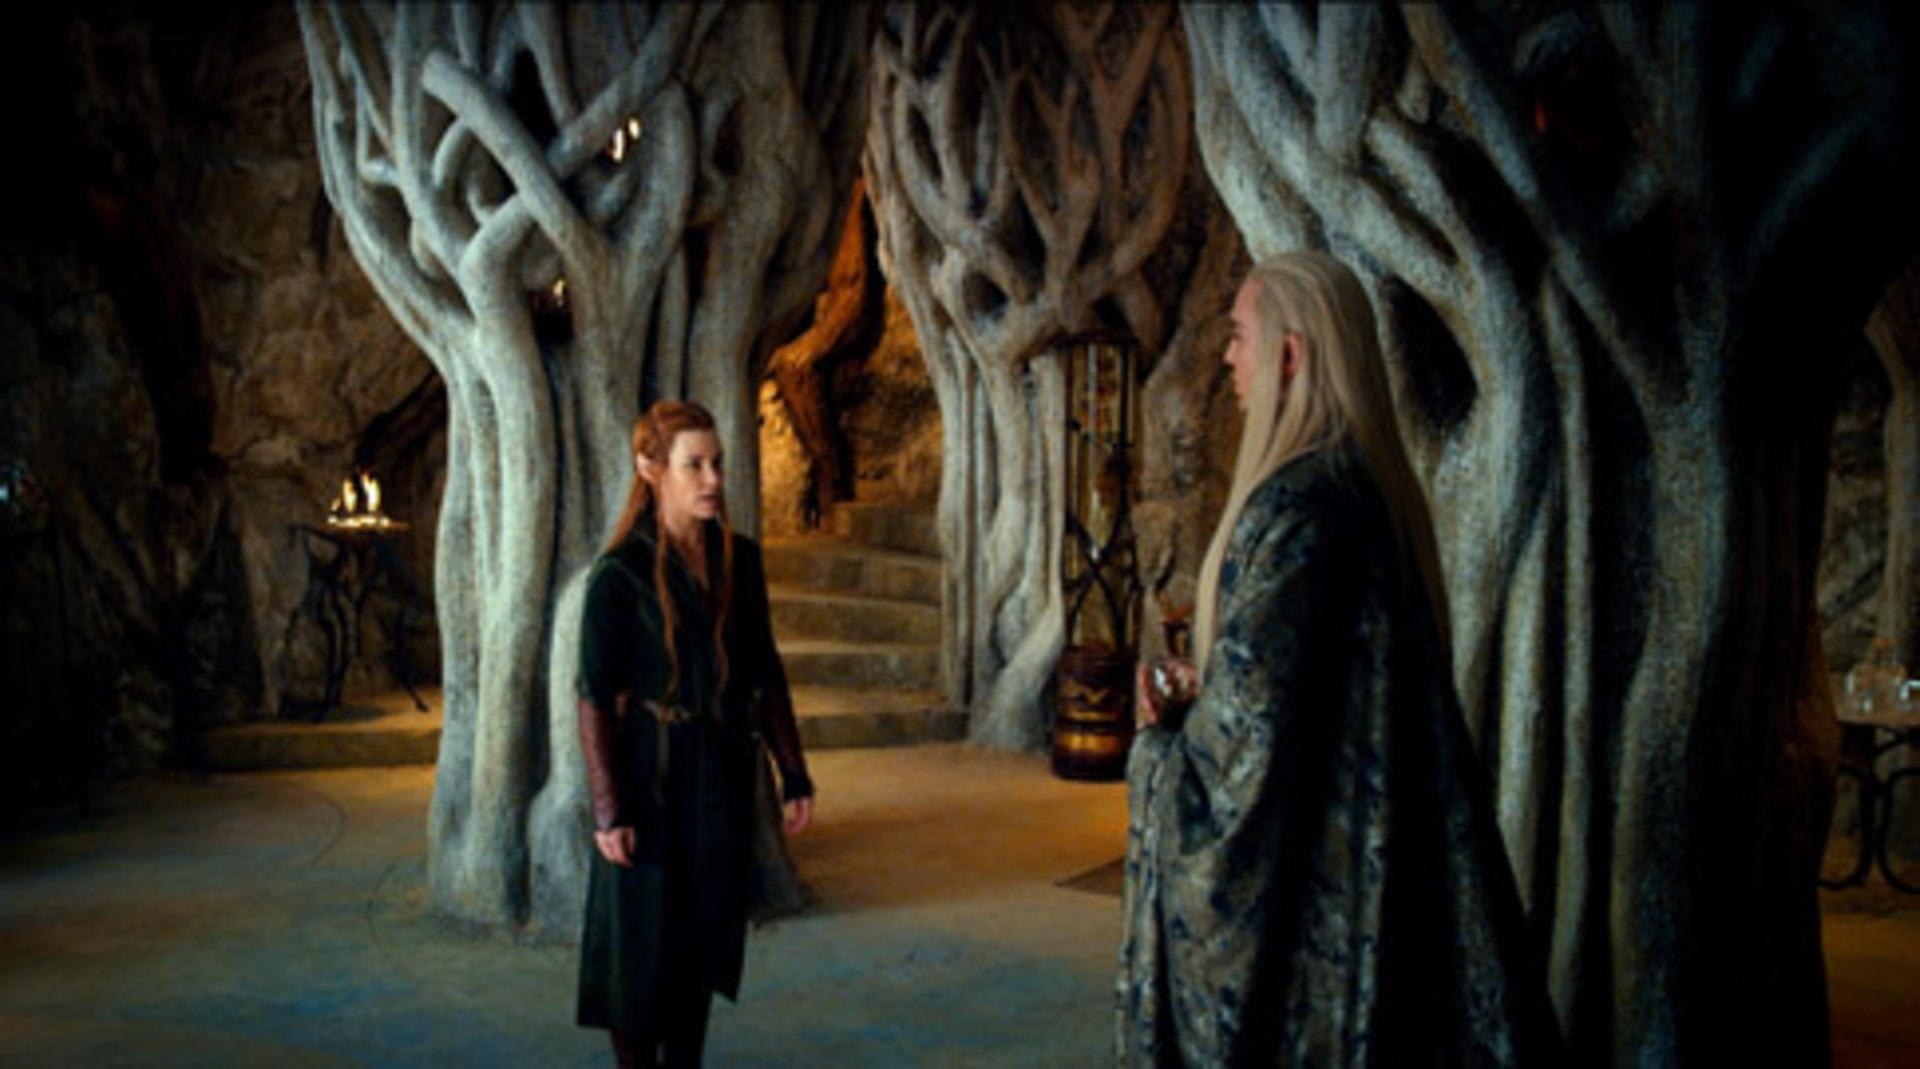 The Hobbit: The Desolation of Smaug - Image 24